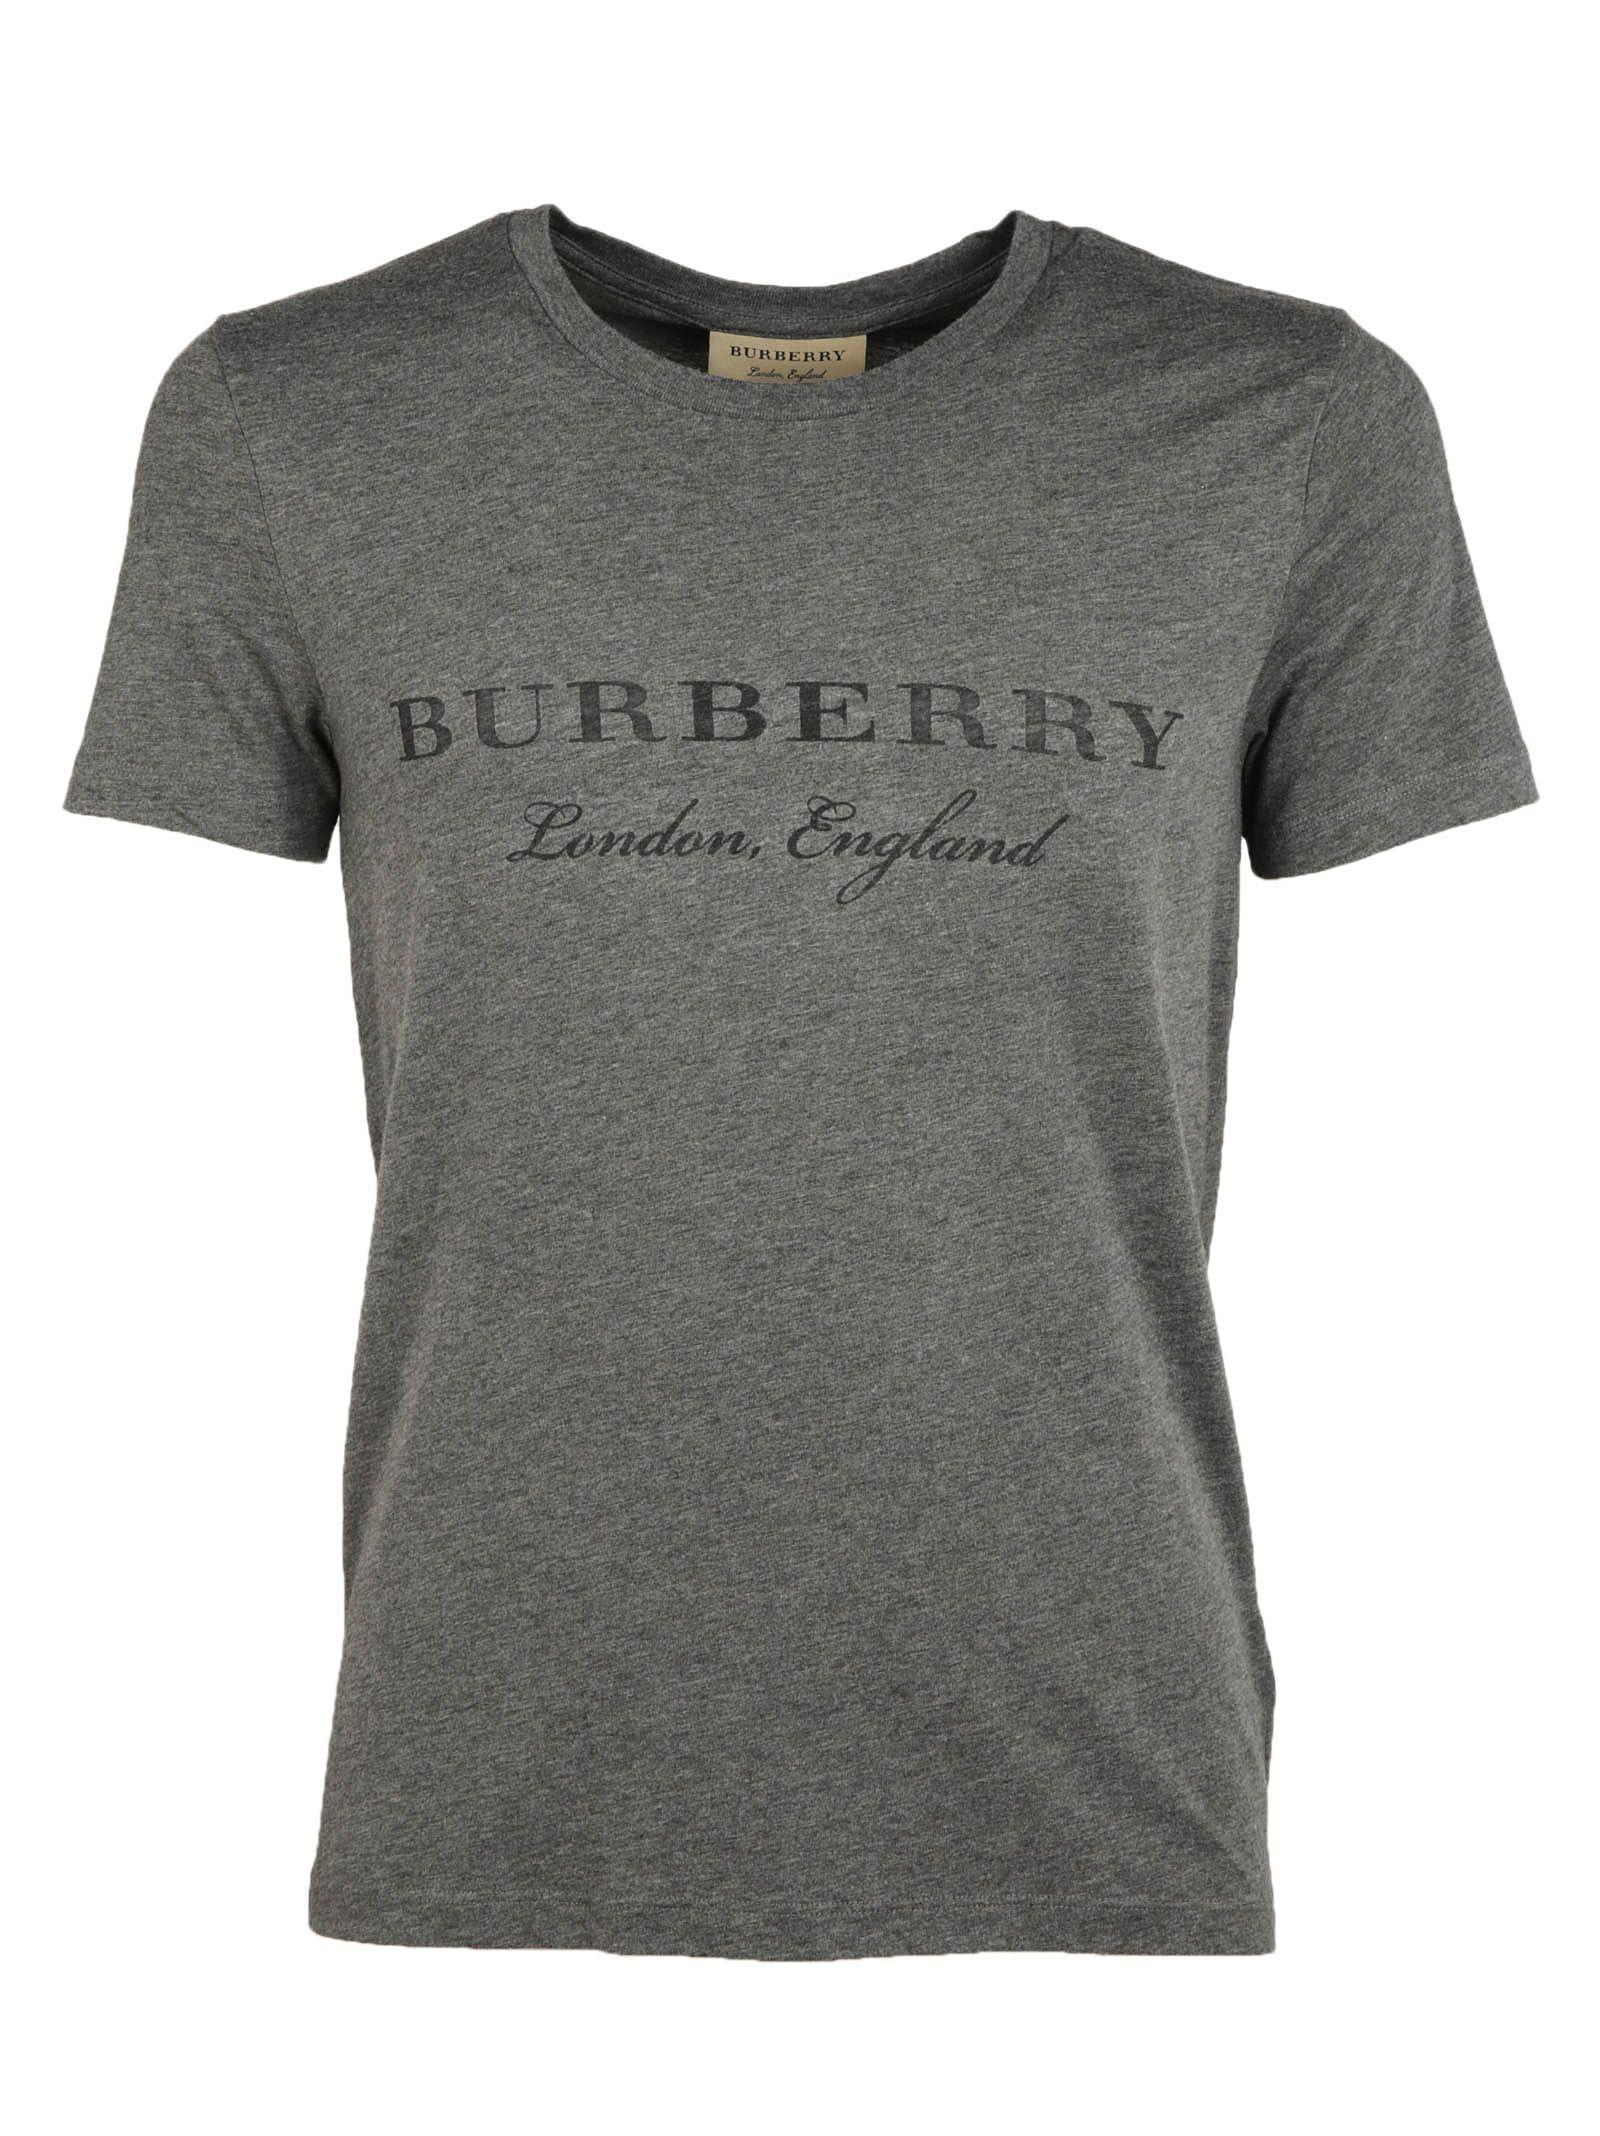 Burberry Logo Print T-shirt In Mid Grey Melange